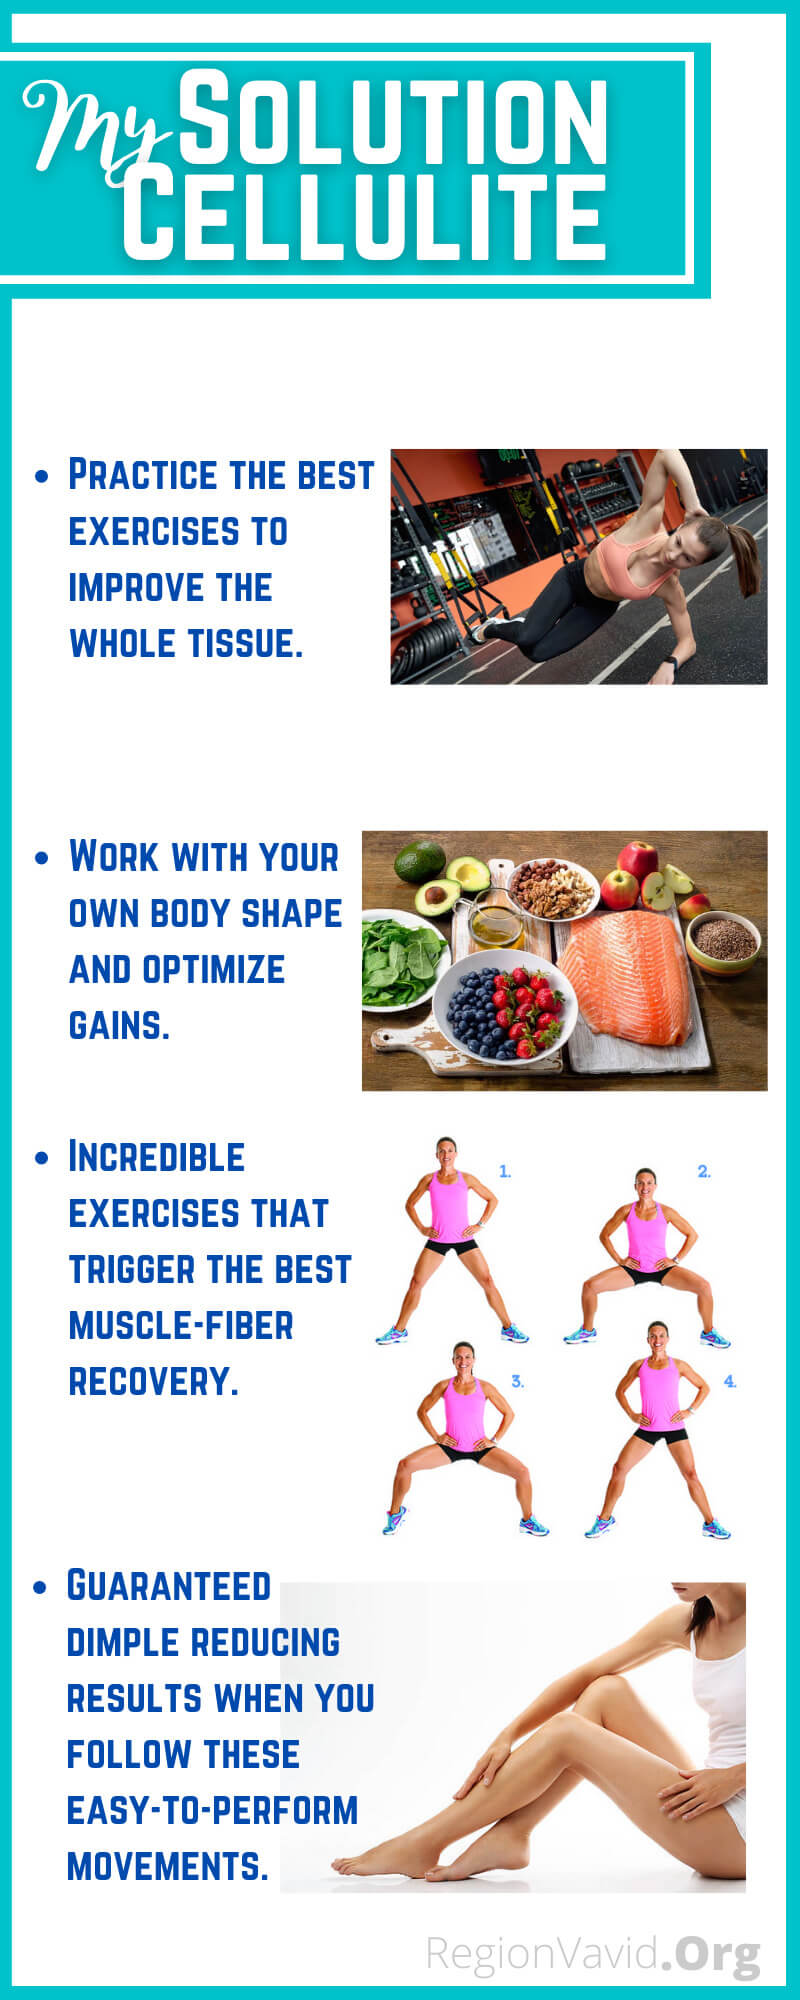 My Cellulite Solution Benefits